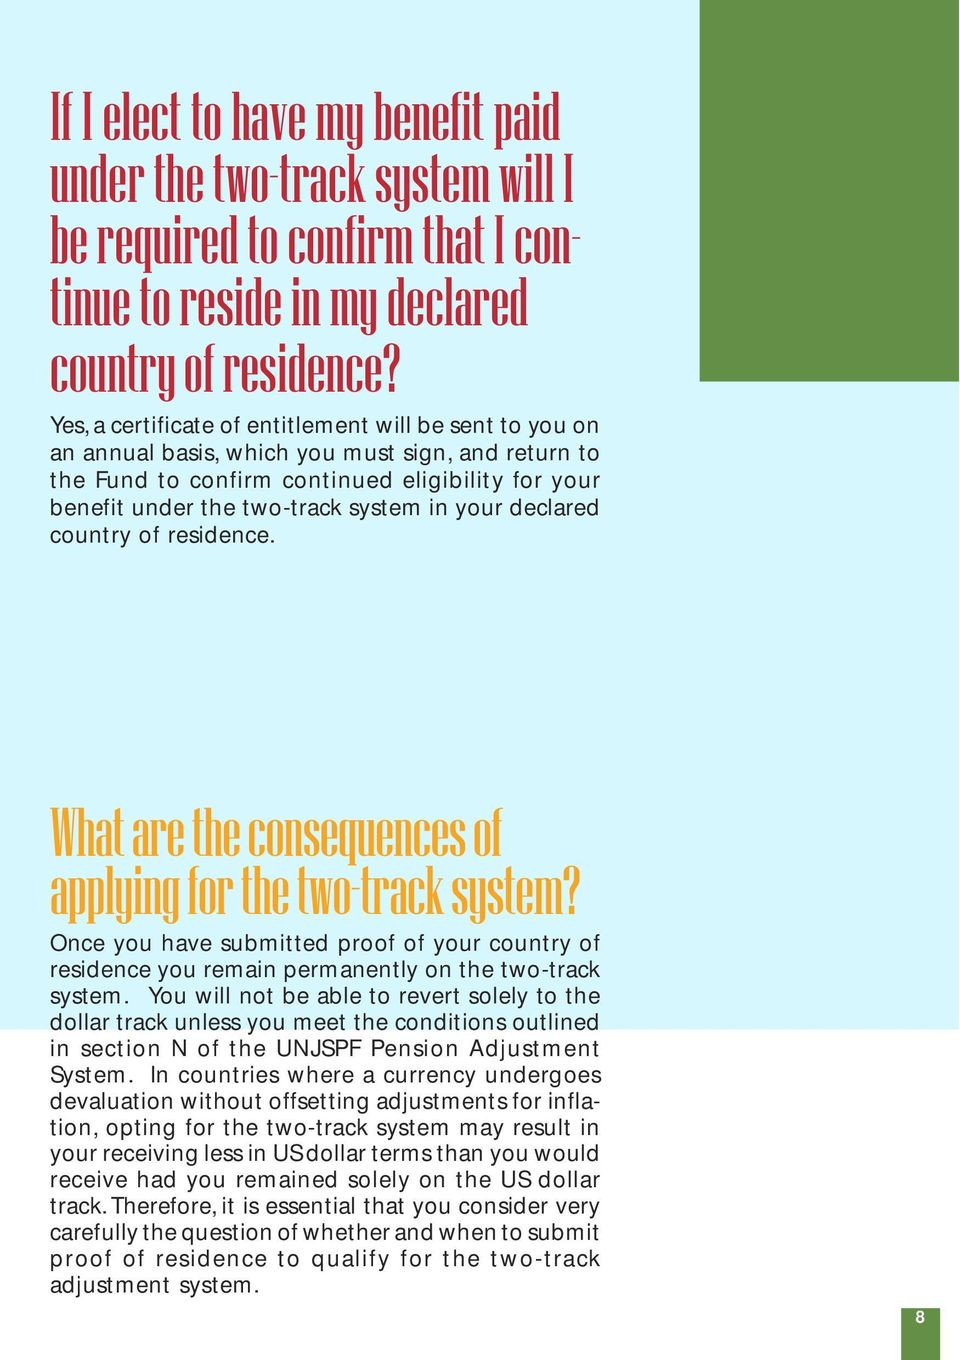 your declared country of residence. What are the consequences of applying for the two-track system?